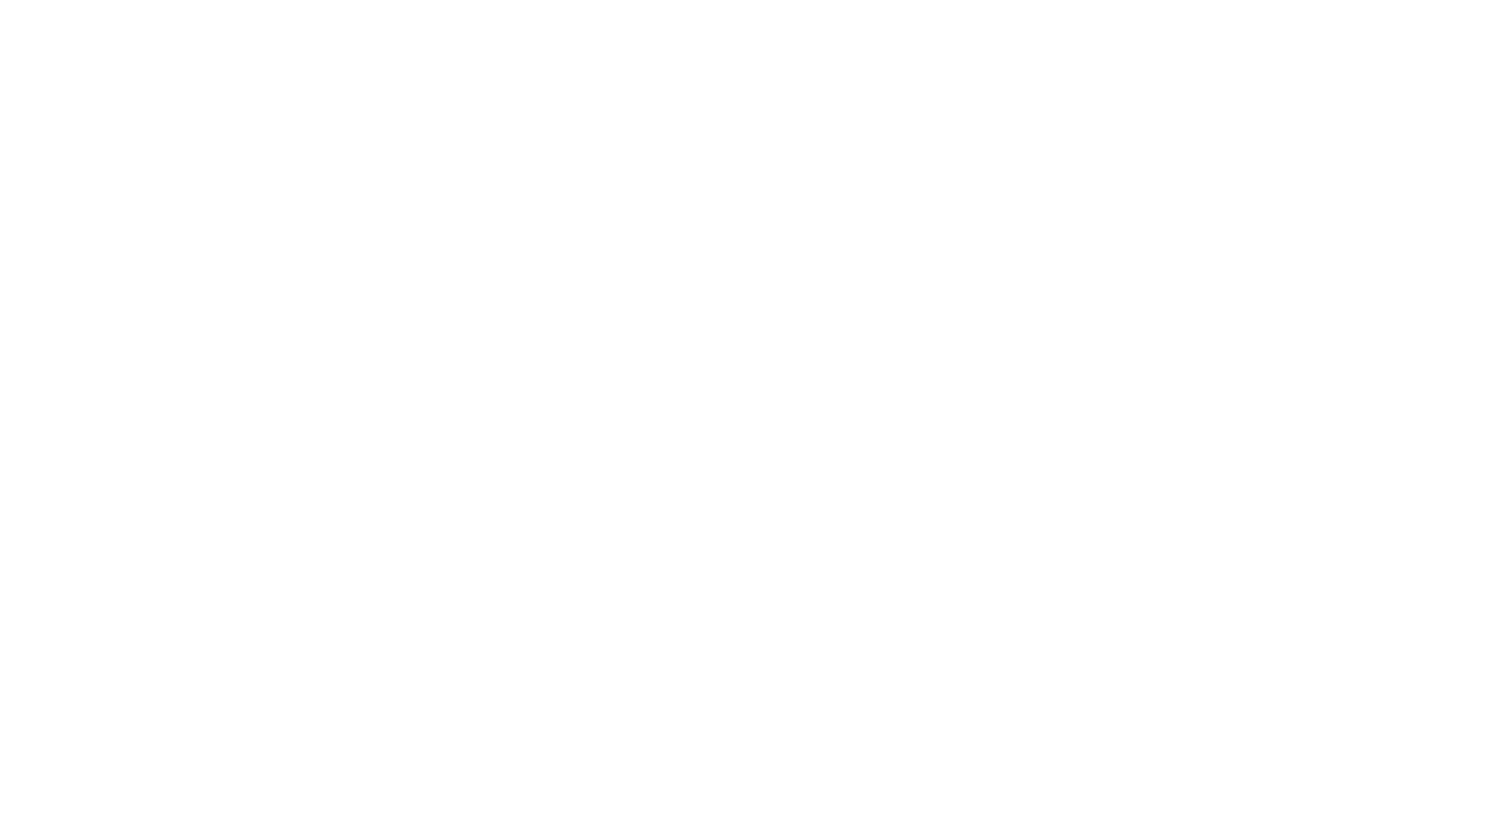 ALLIANCE VINUM